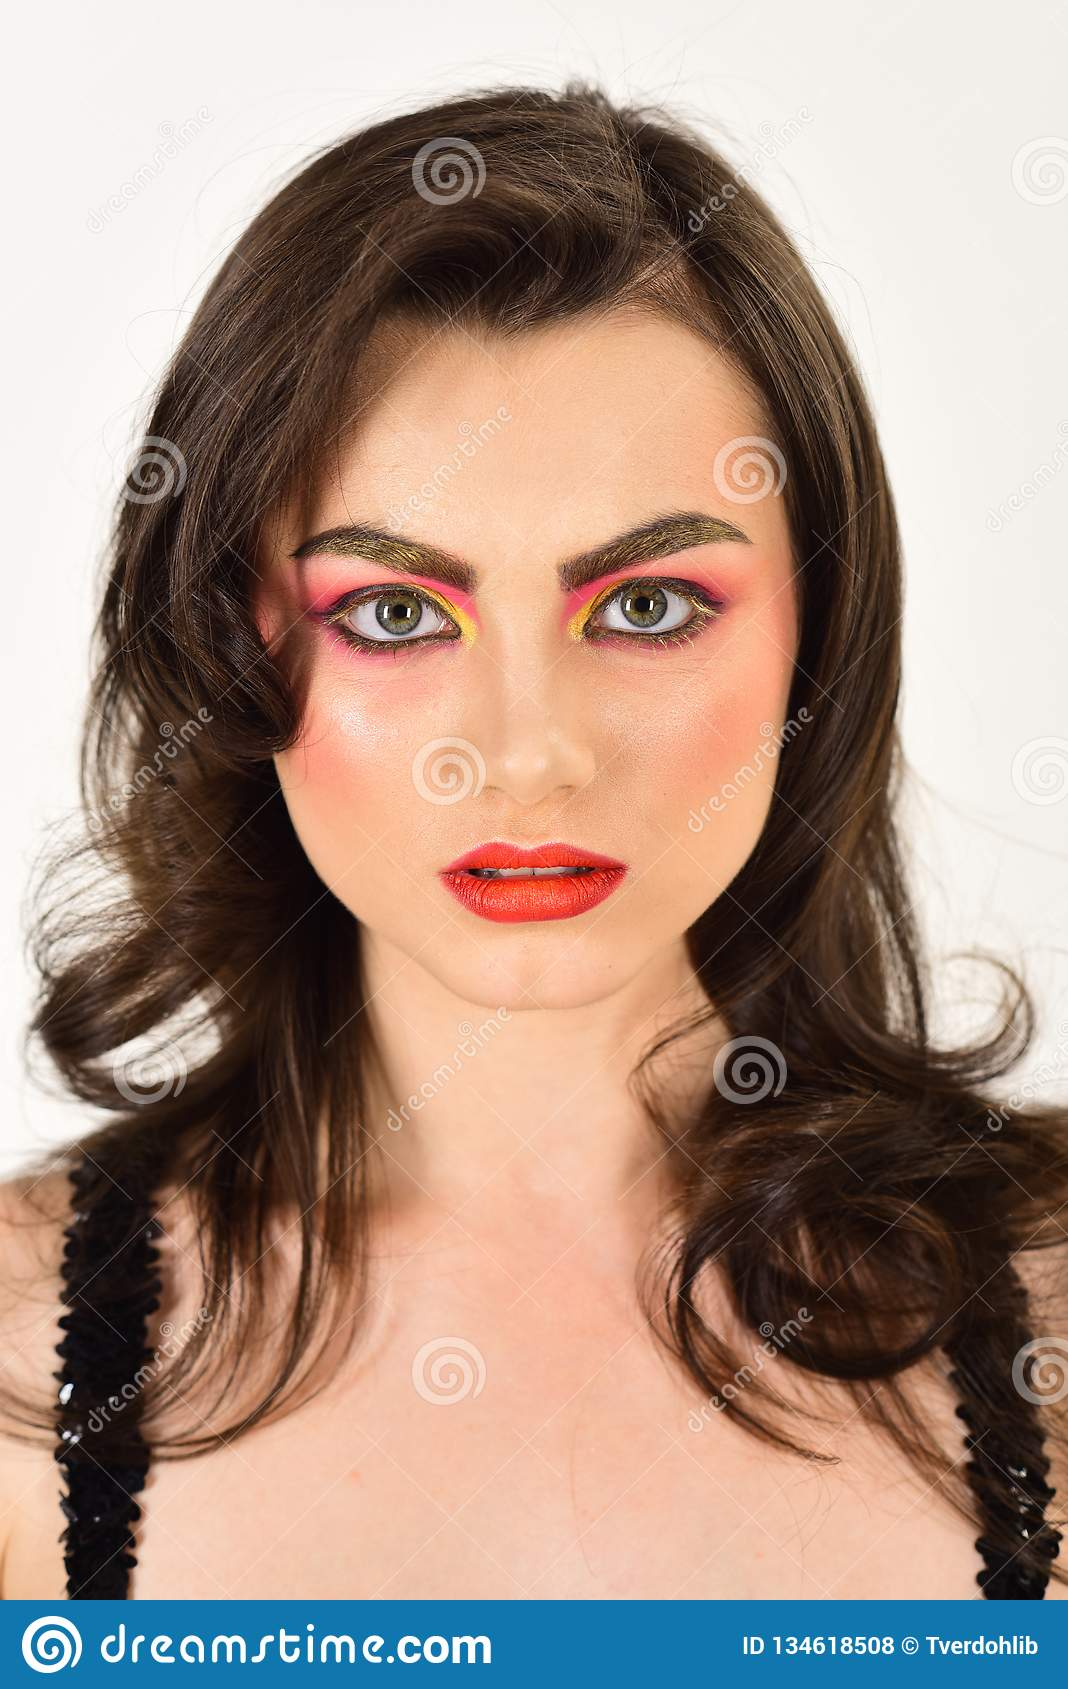 Keeping skin both radiant and fresh. Pretty woman wear creative makeup. woman with color cosmetics. Beauty model